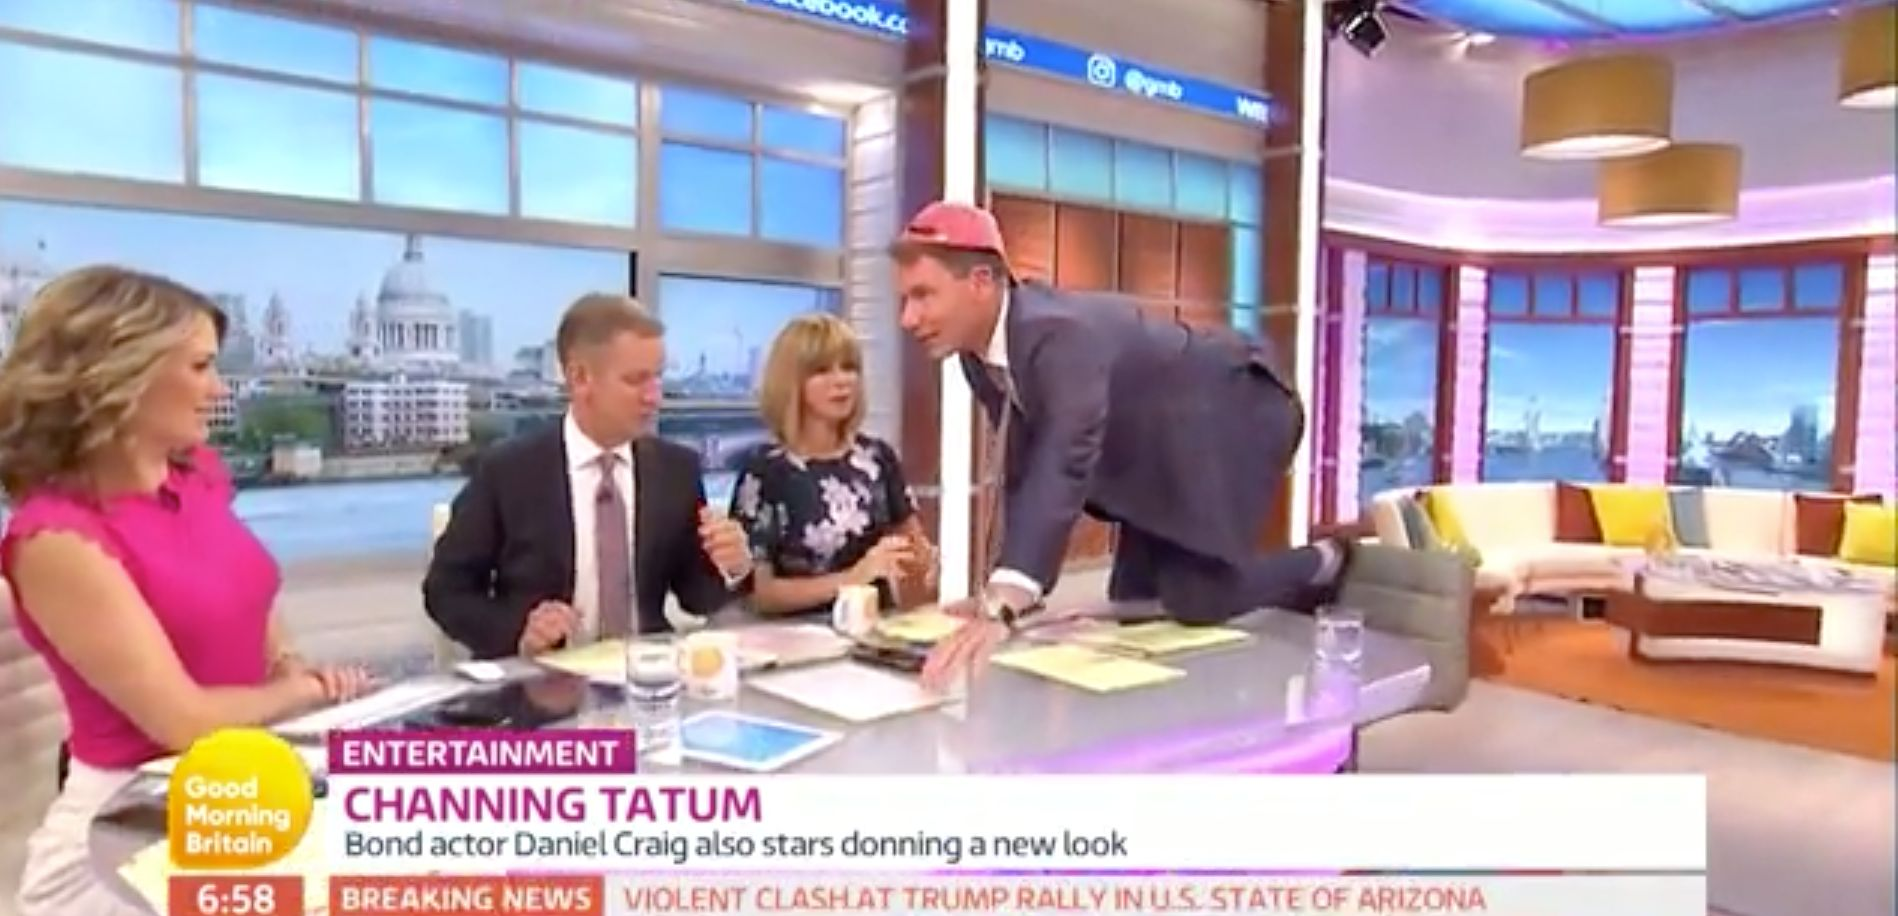 No One Knows Where To Look As Richard Arnold Gyrates On The 'Good Morning Britain'